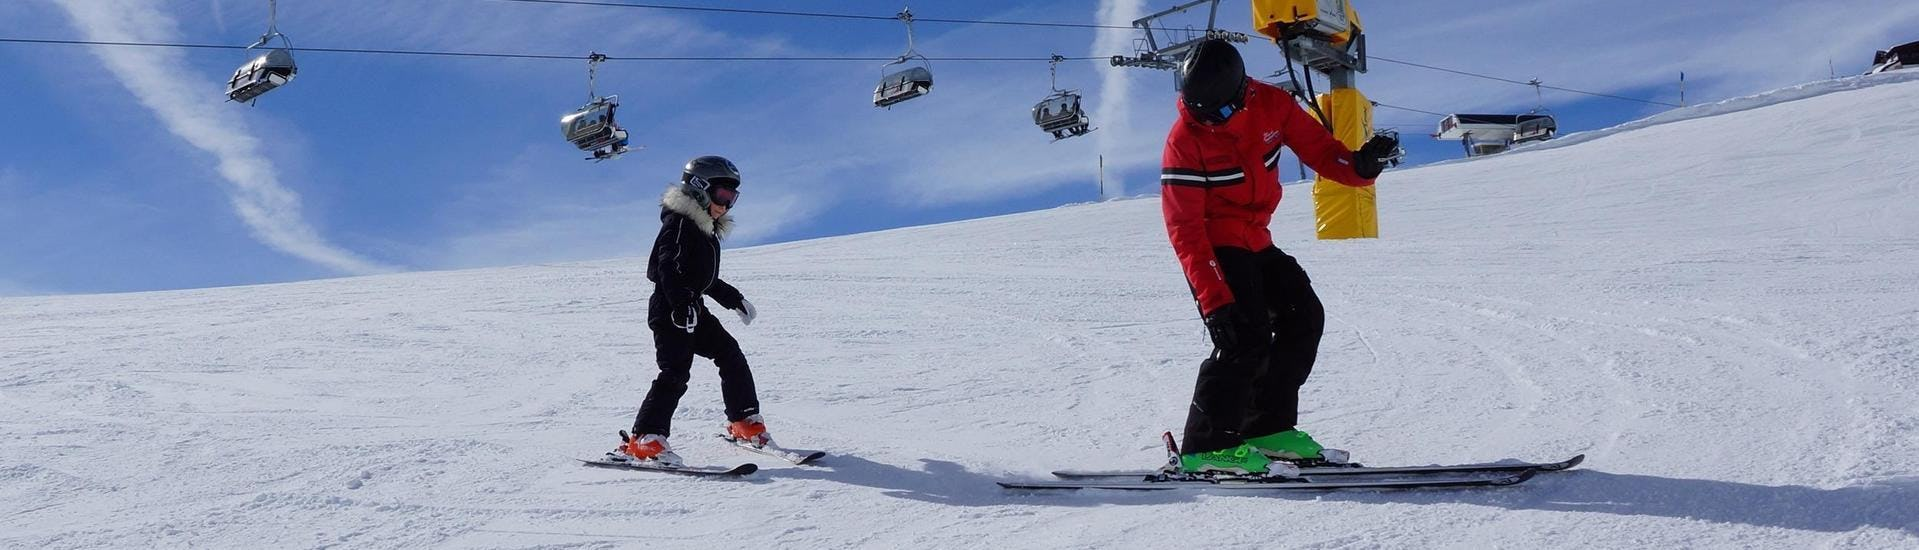 """A ski instructor from the ski school Ski- und Snowboardschule Vacancia is teaching a young child how to ski during its Kids Ski Lessons """"All-Inclusive"""" (9-15 years) - All Levels."""